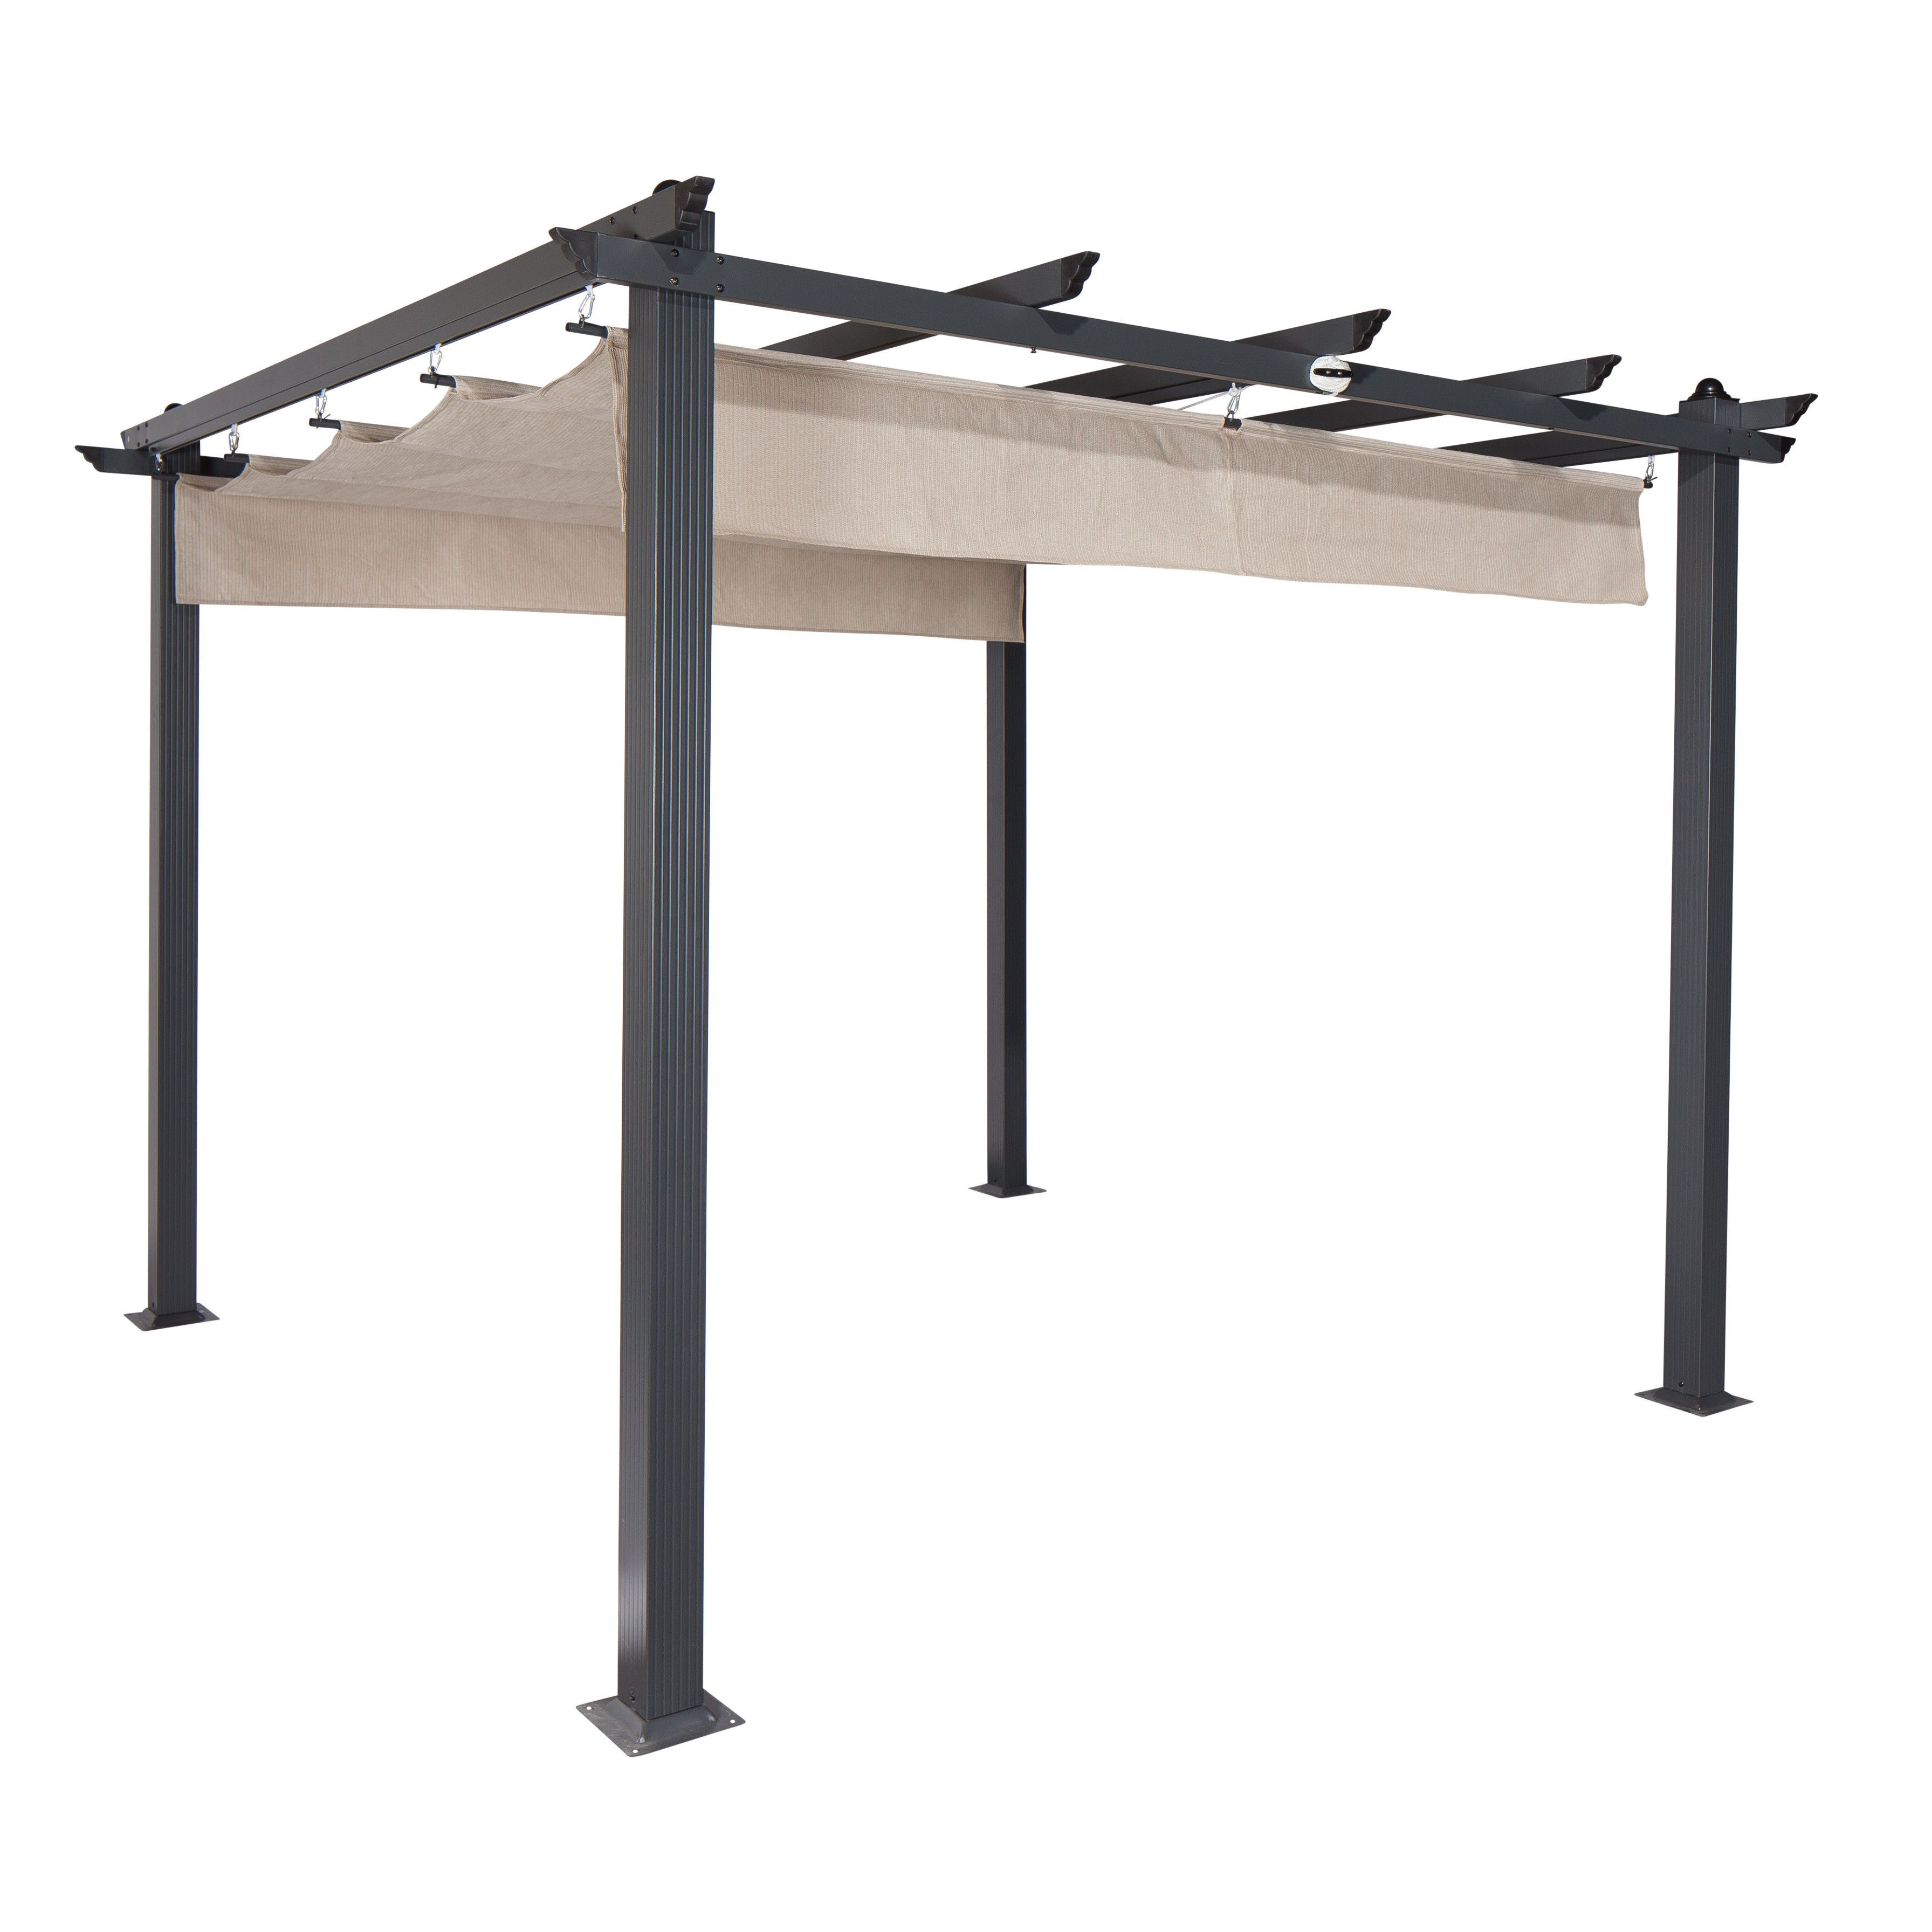 Features Provides UV block Retractable roman style shade